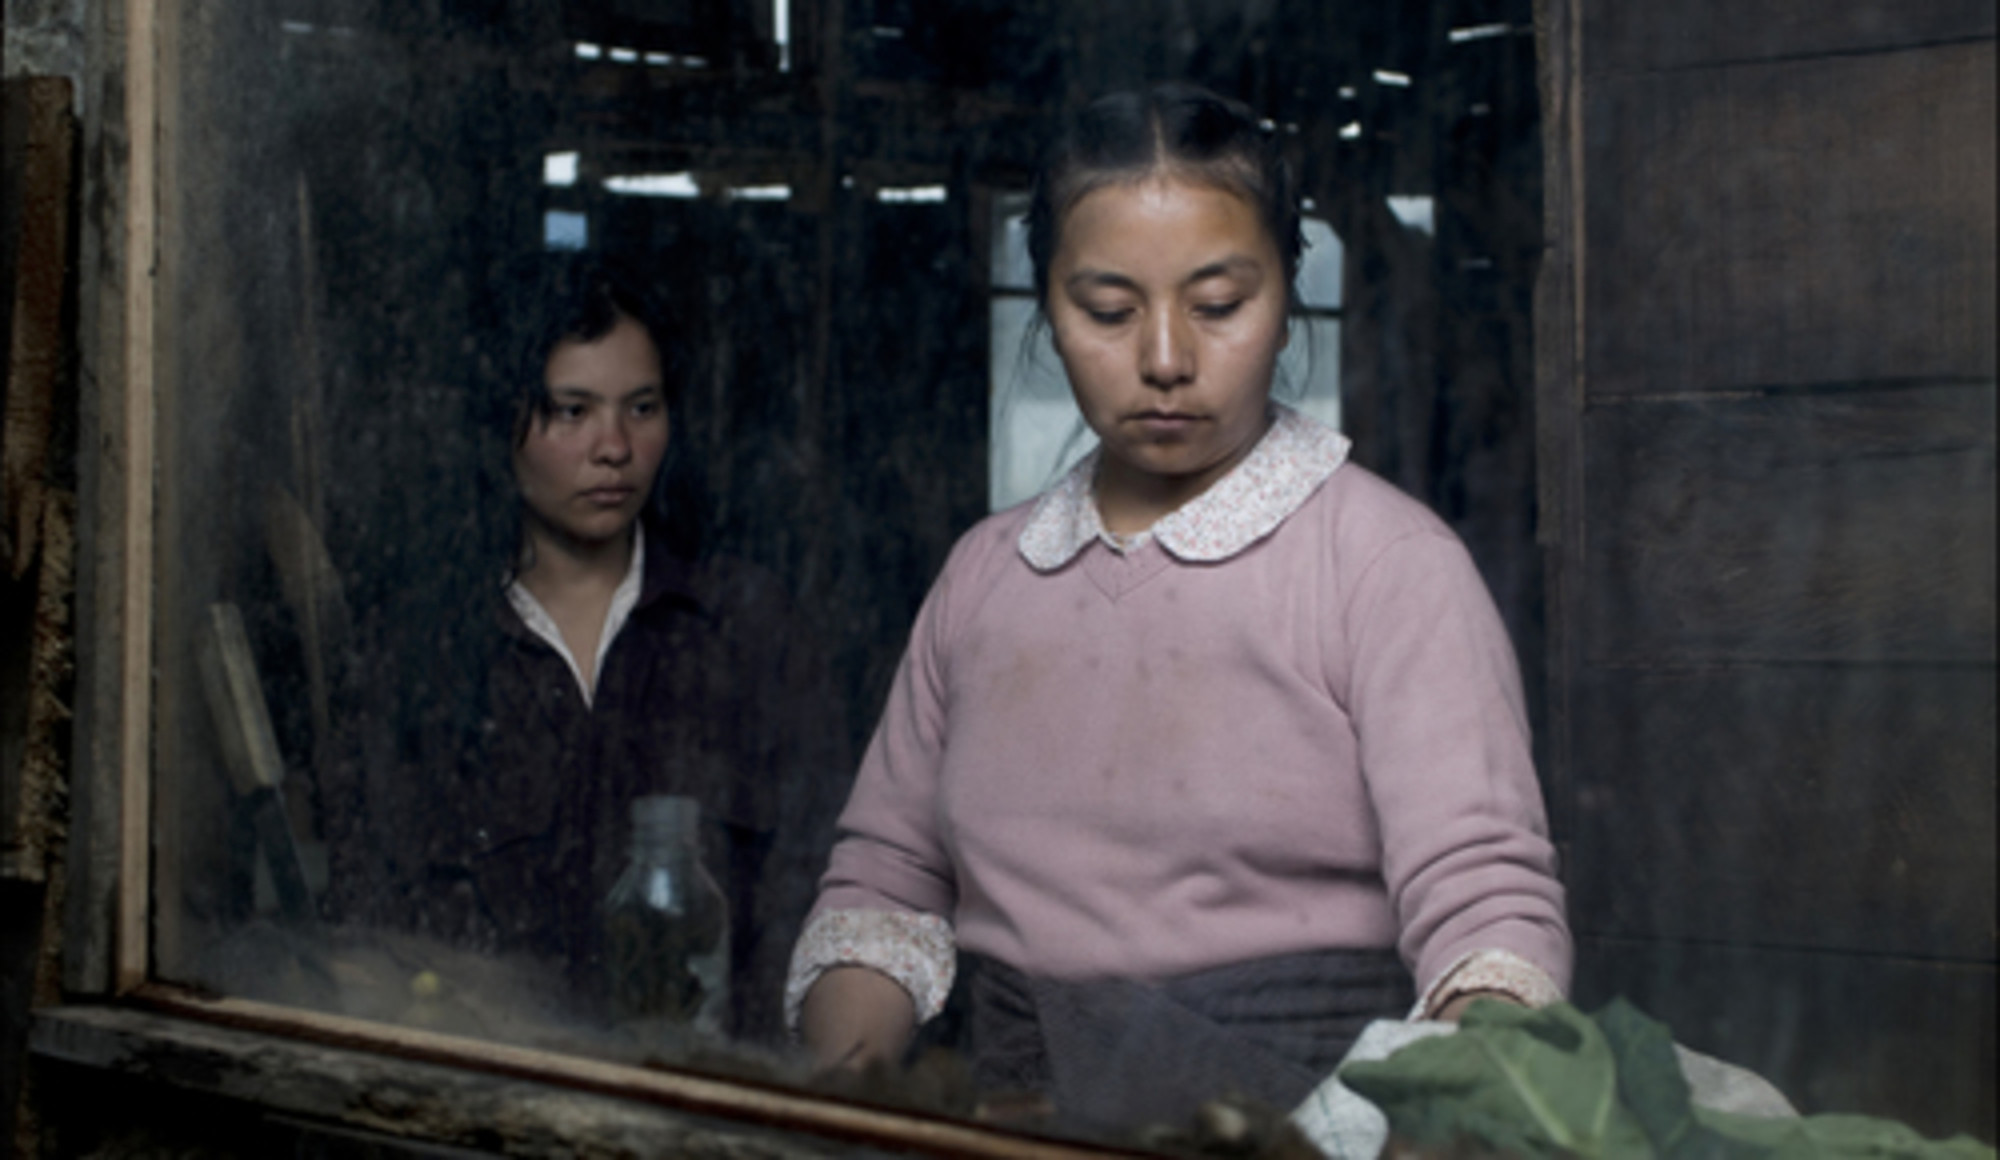 La Sirga (The Towrope). 2012. Columbia/Mexico. Directed by William Vega. Courtesy Film Movement